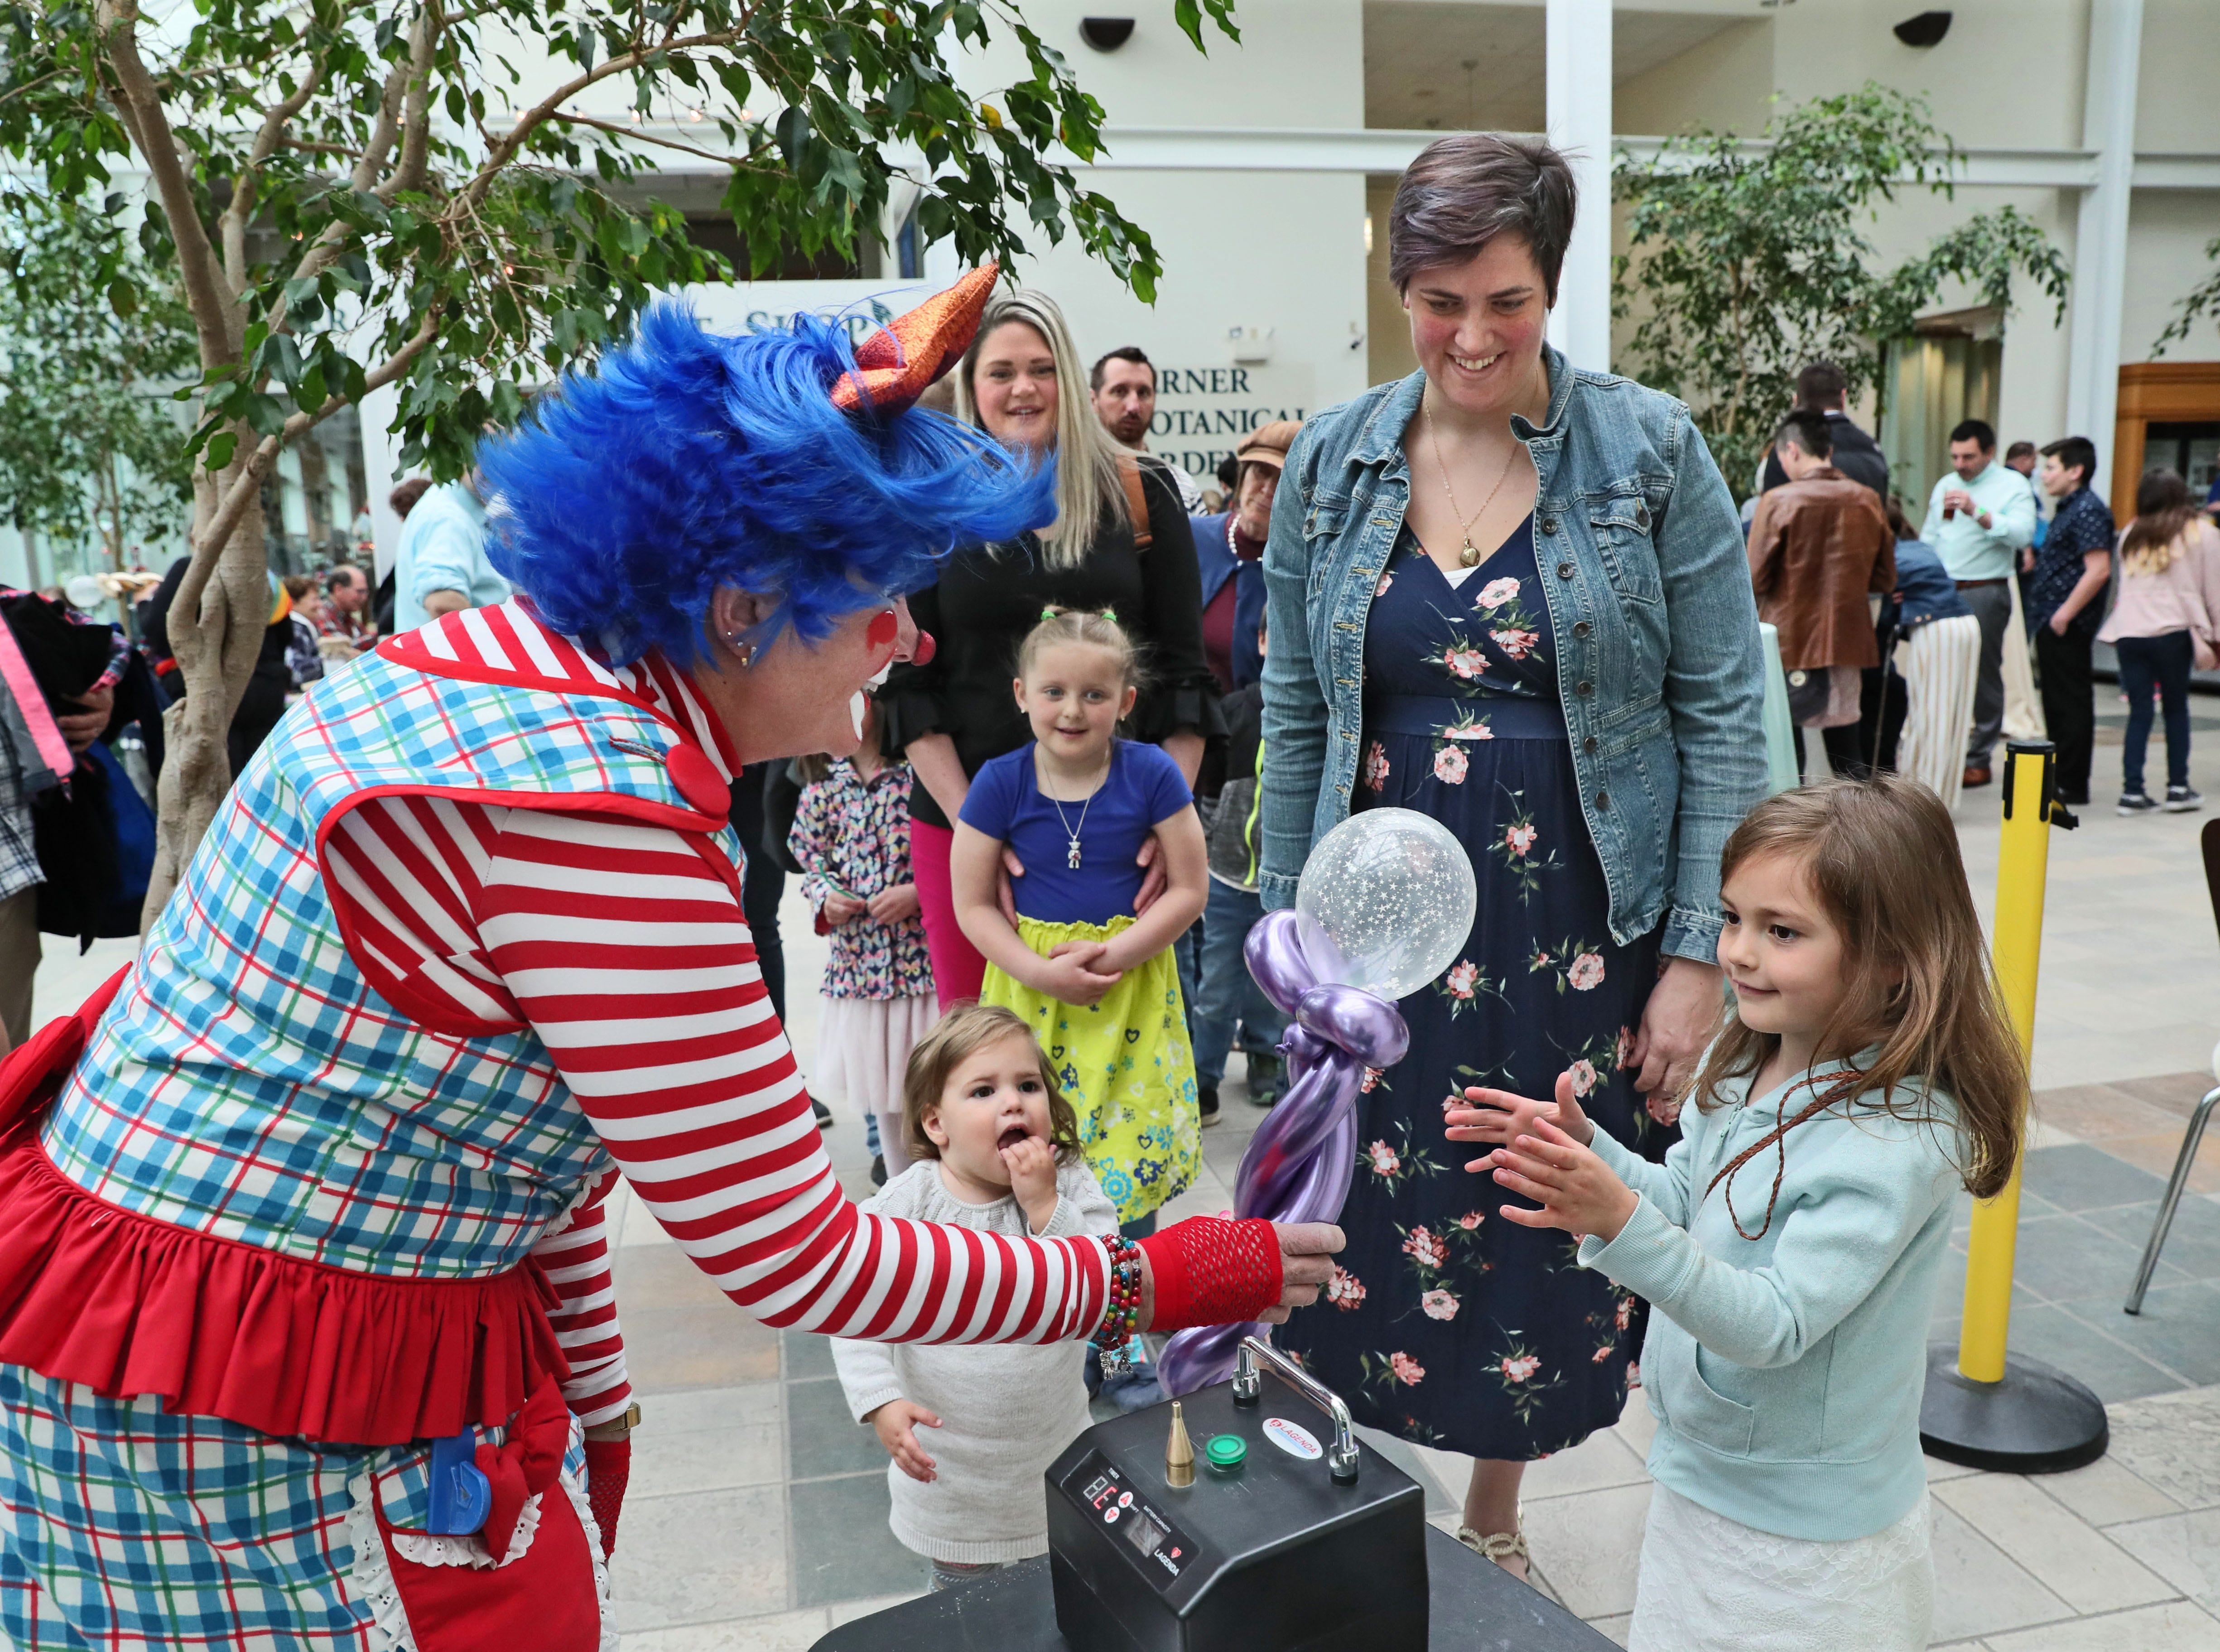 Miss Sparkle The Clown makes artistic balloon creations for children and their mothers.  Jennifer Cera (center) of Wauwatosa is with her two children, Ramona, 5, getting her balloon, and Margot, 1, lower center.  At rear waiting in line is Brooke Moersfelder of Greenfield and her daughter Rose, 5.